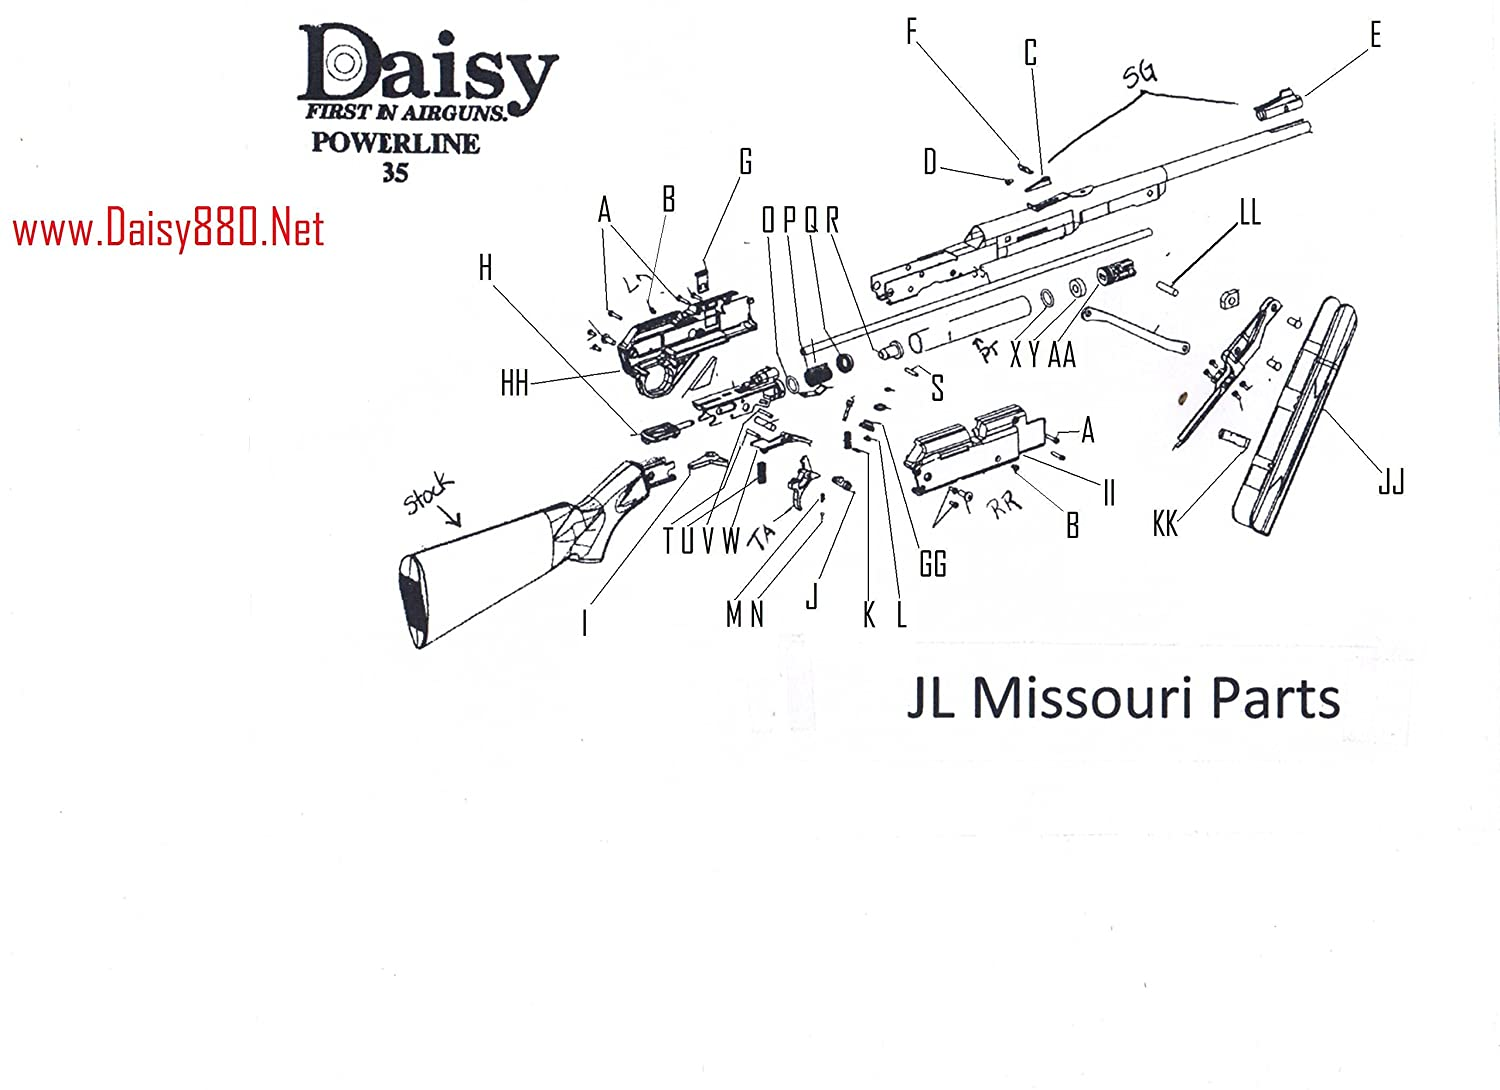 daisy powerline 880 parts diagram